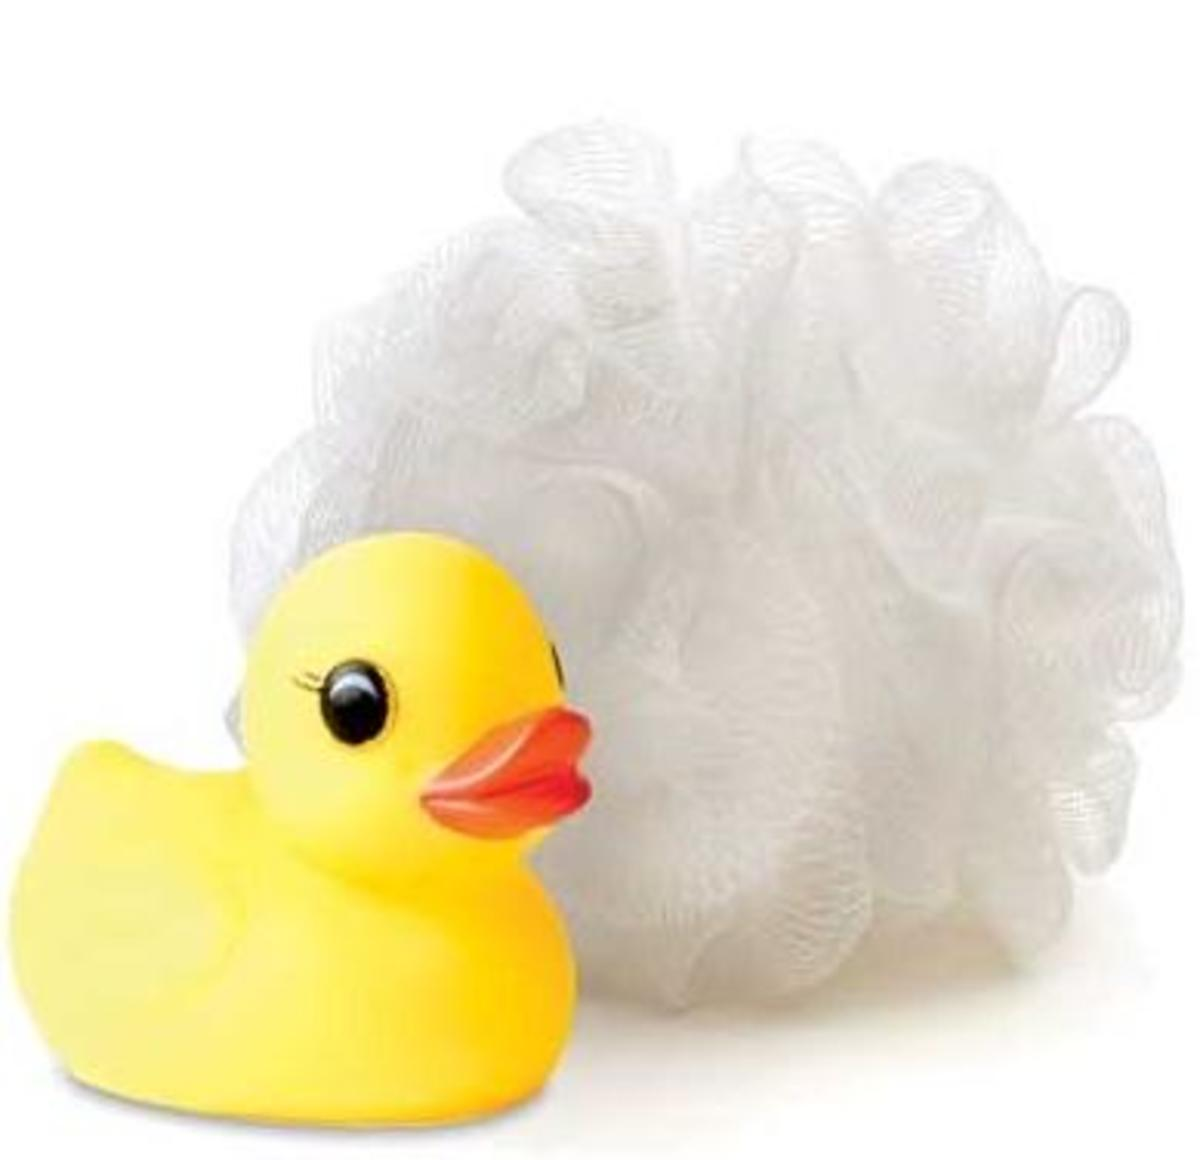 Lather up your arm pits with a loofah or bath sponge before you shave. (image source: socialpooch.com)